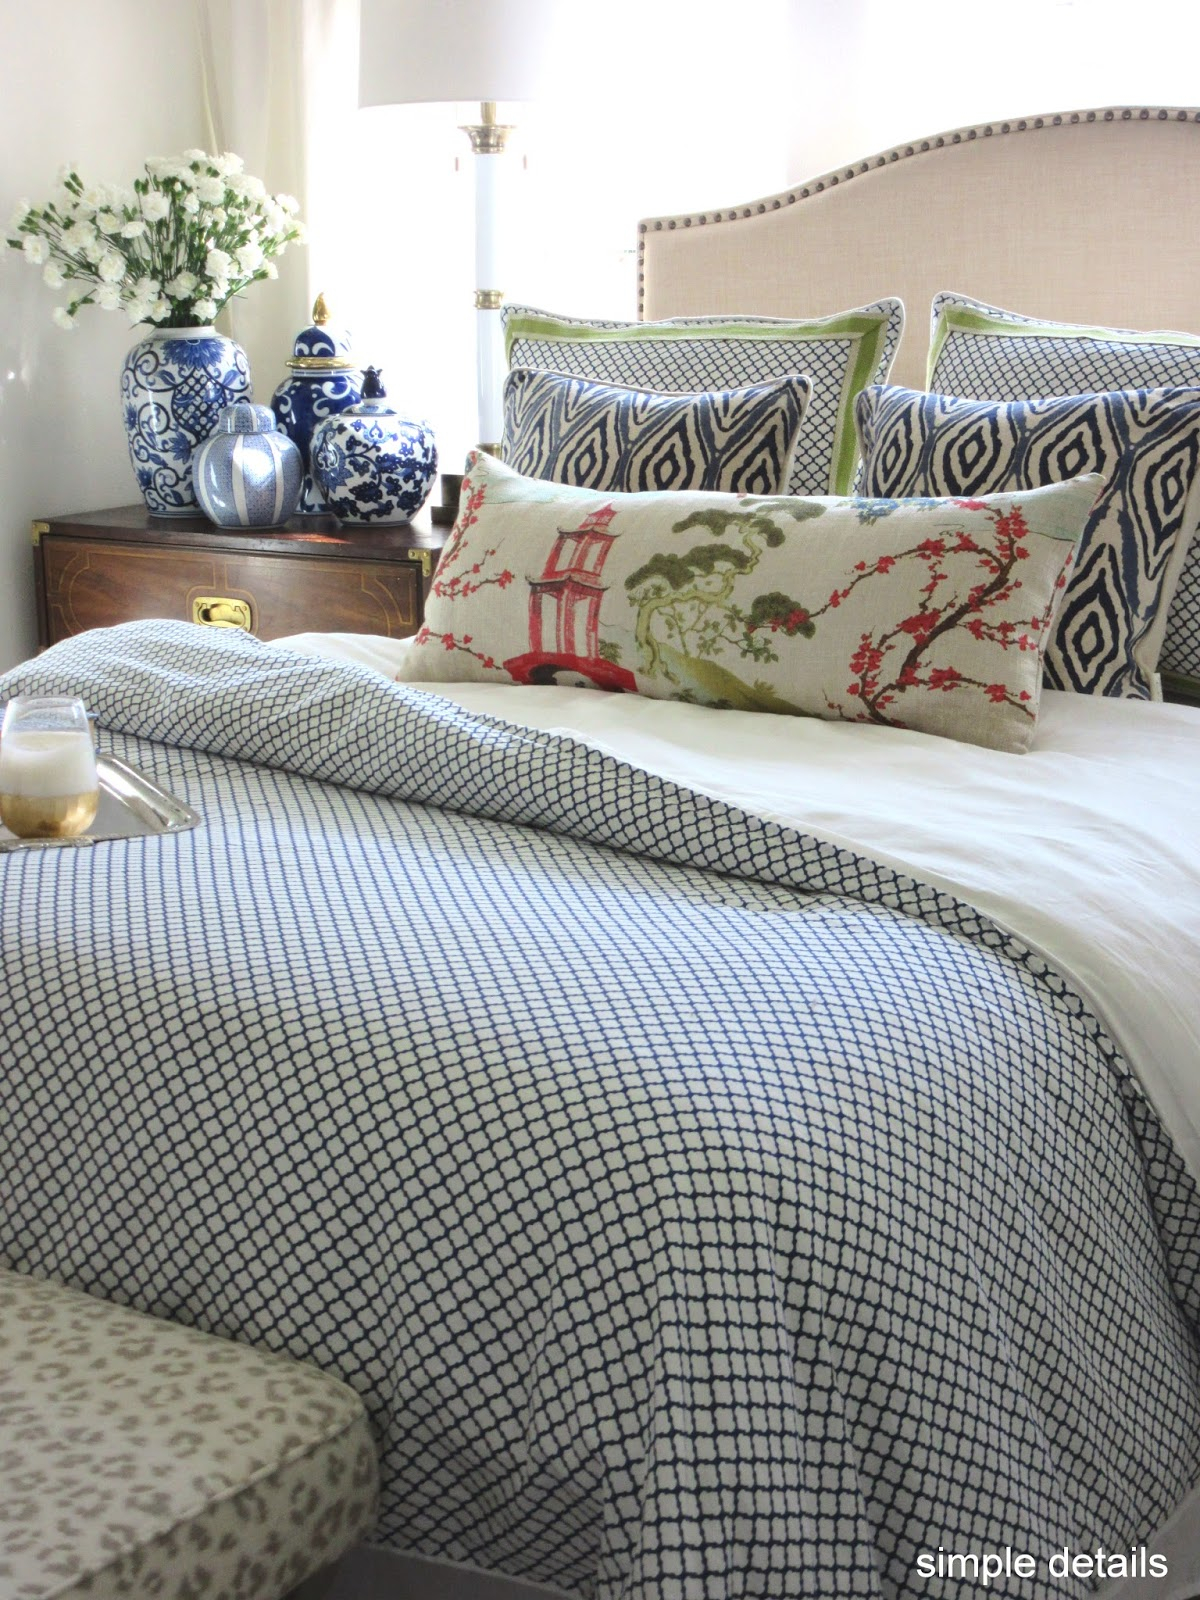 Simple Details Bedroom Refresh with Crane & Canopy